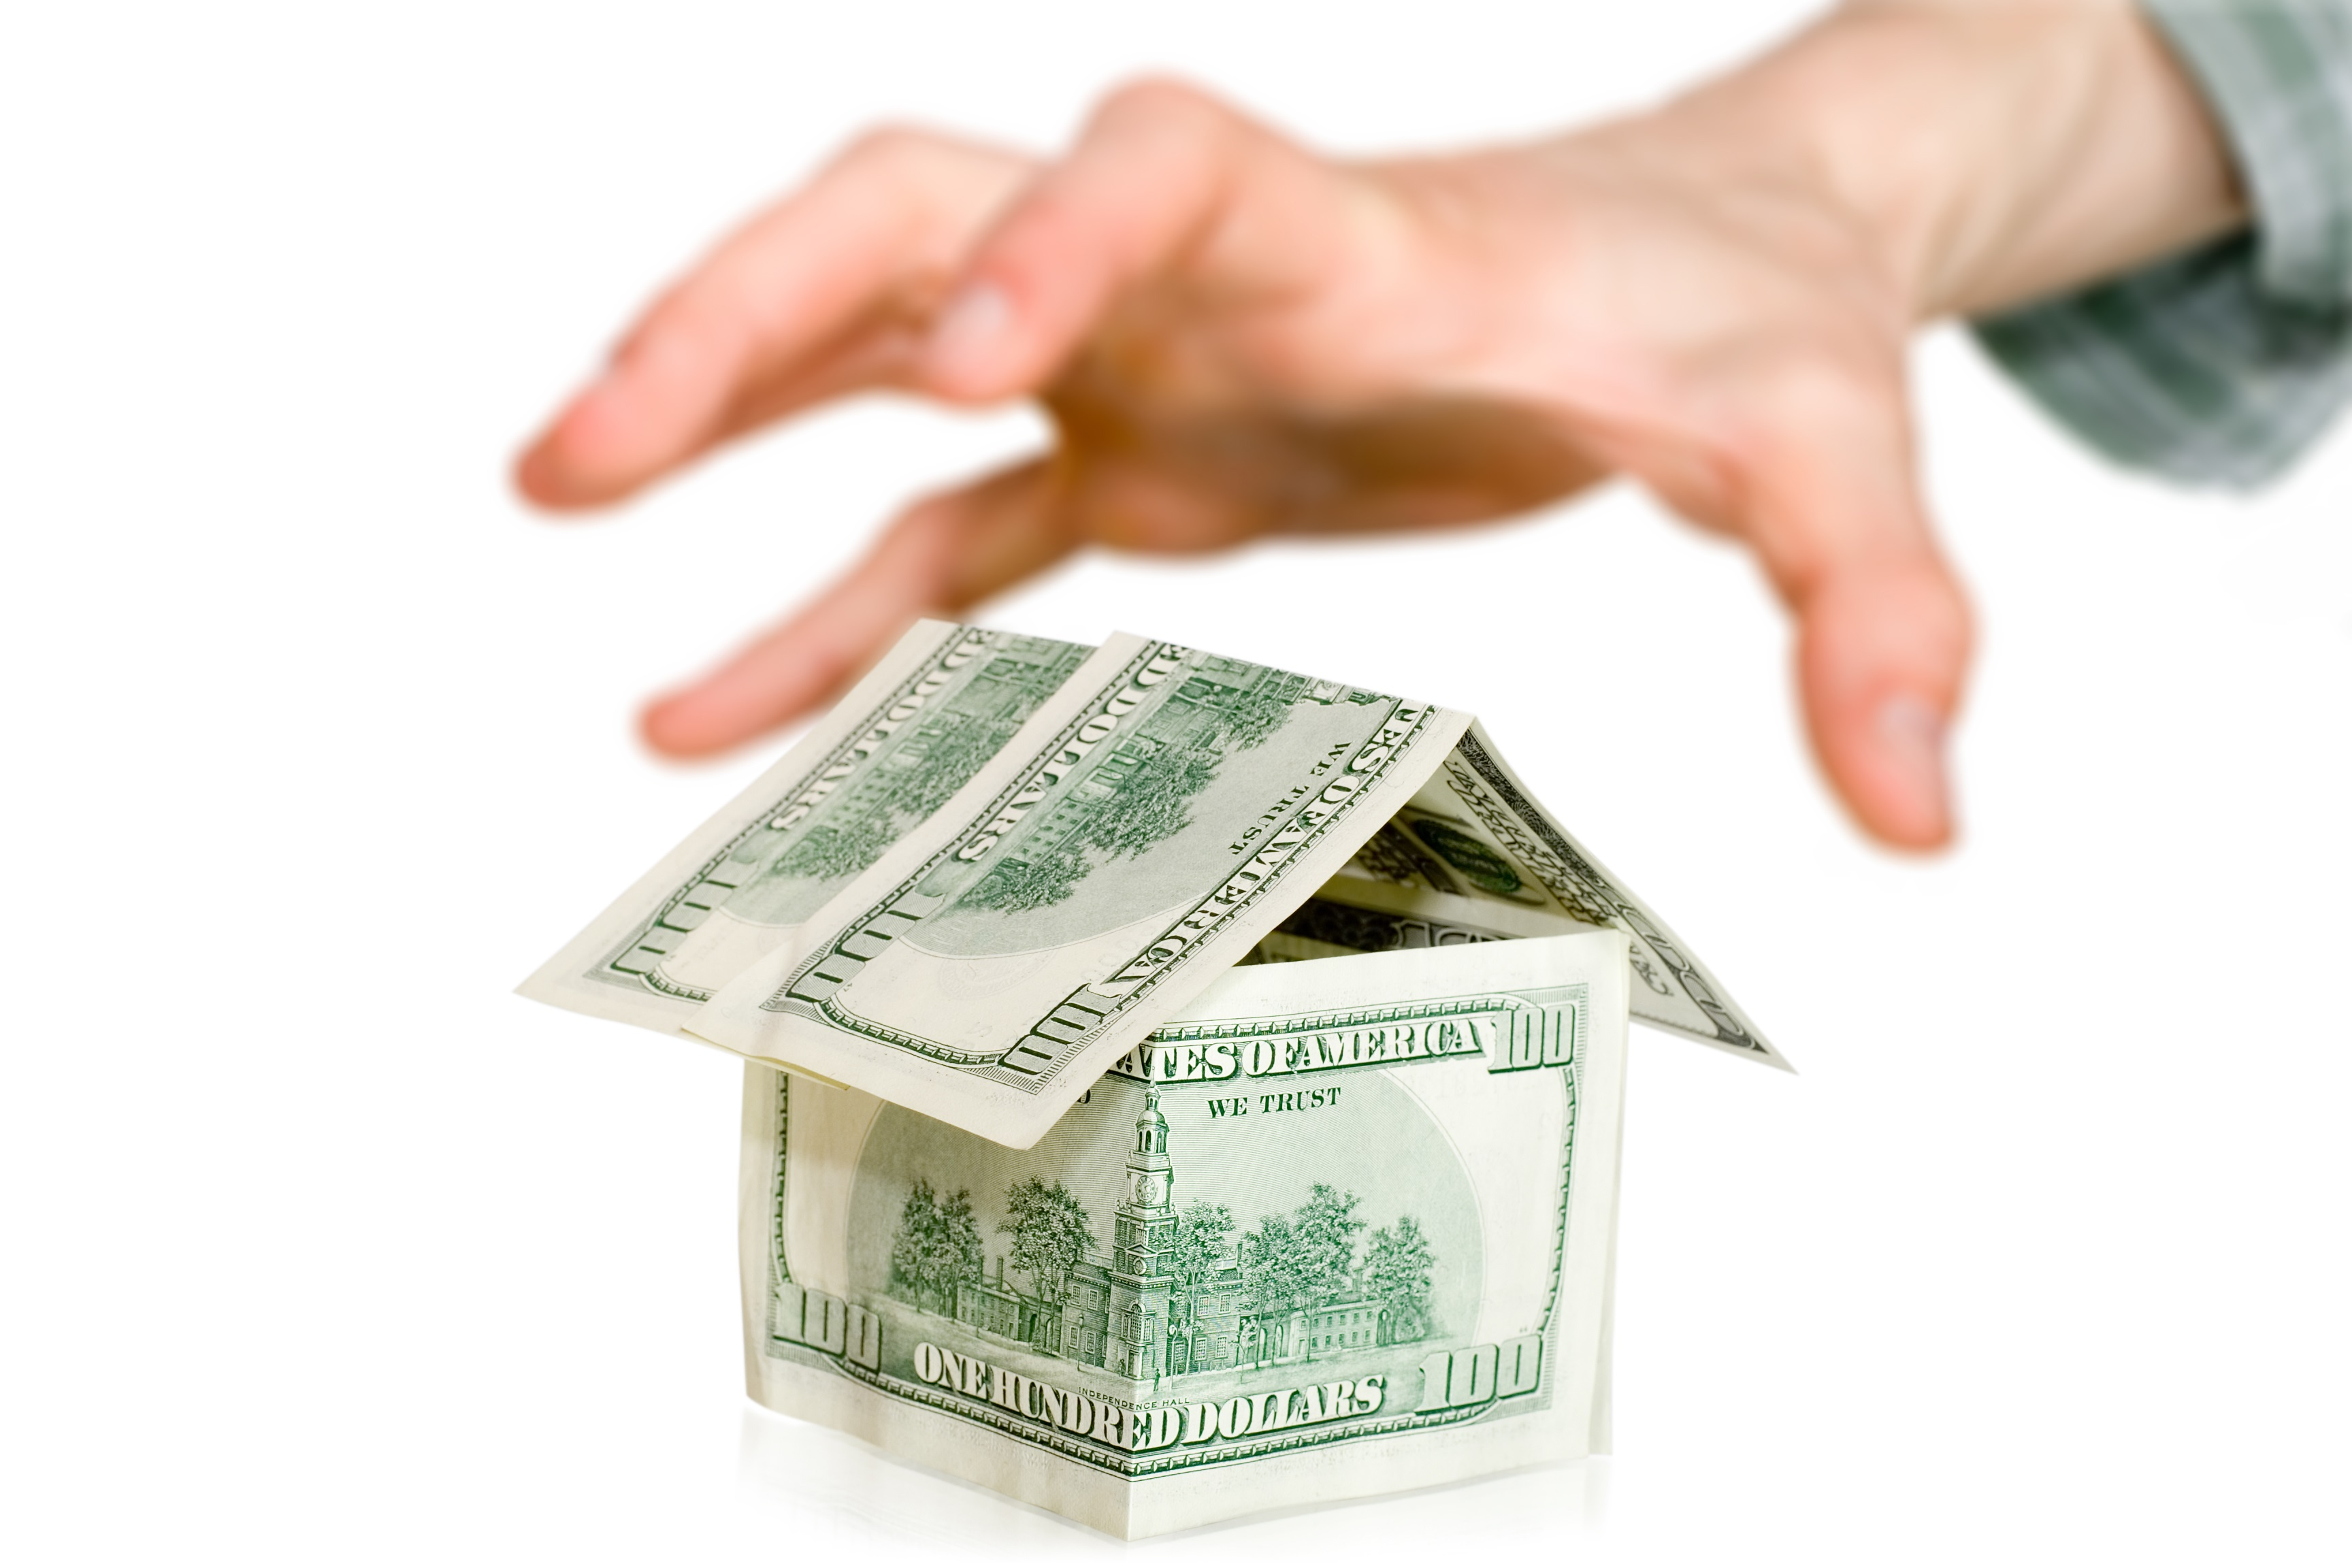 irs taking away assets or properties